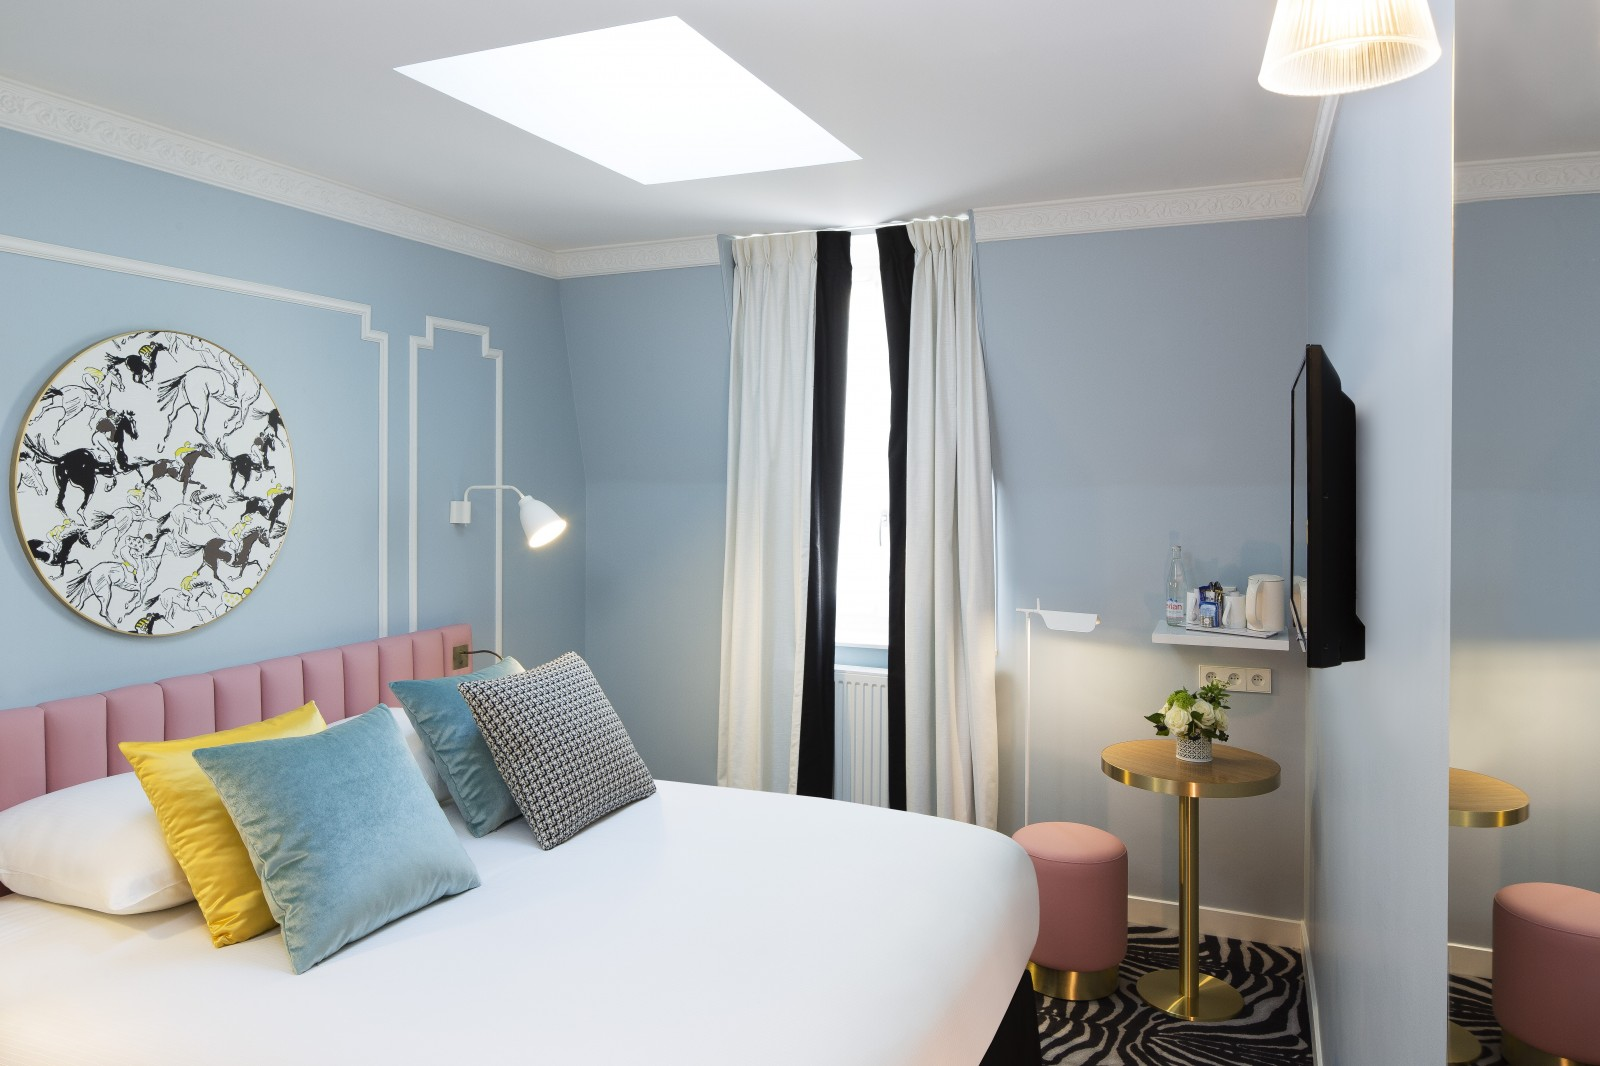 hotel pastel paris hotel near arc de triomphe rooms. Black Bedroom Furniture Sets. Home Design Ideas